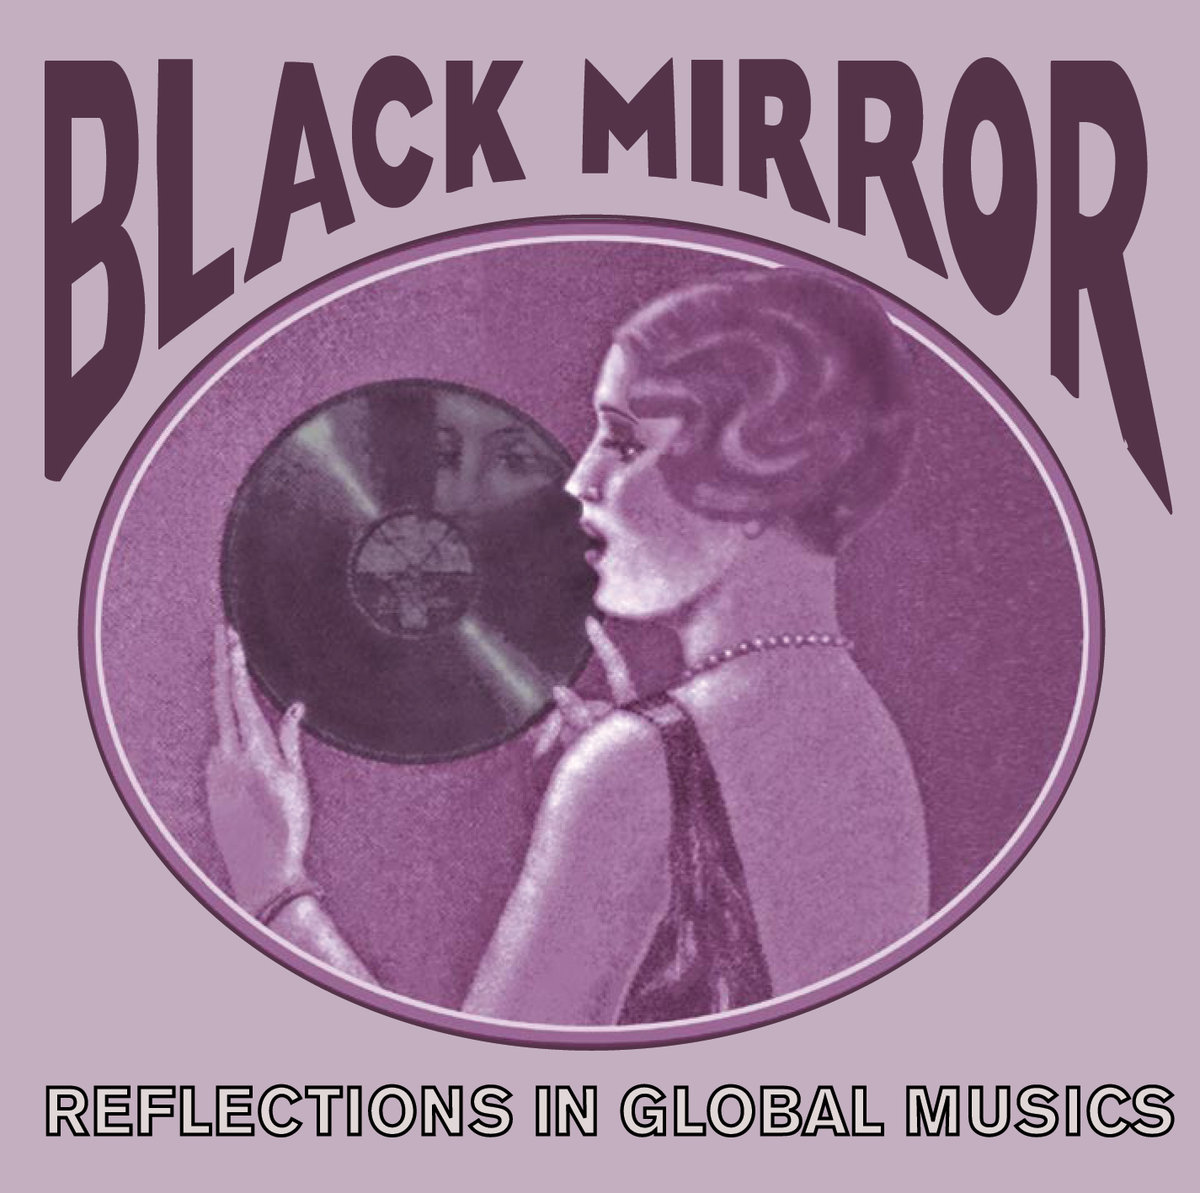 Black Mirror  Release Date: November 20, 2007 Label: Dust-to-Digital  SERVICE: Restoration, Mastering SOURCE MATERIAL: 78 rpm Records NUMBER OF DISCS: 1 GENRE: World, Jazz, Blues, Classical FORMAT: CD